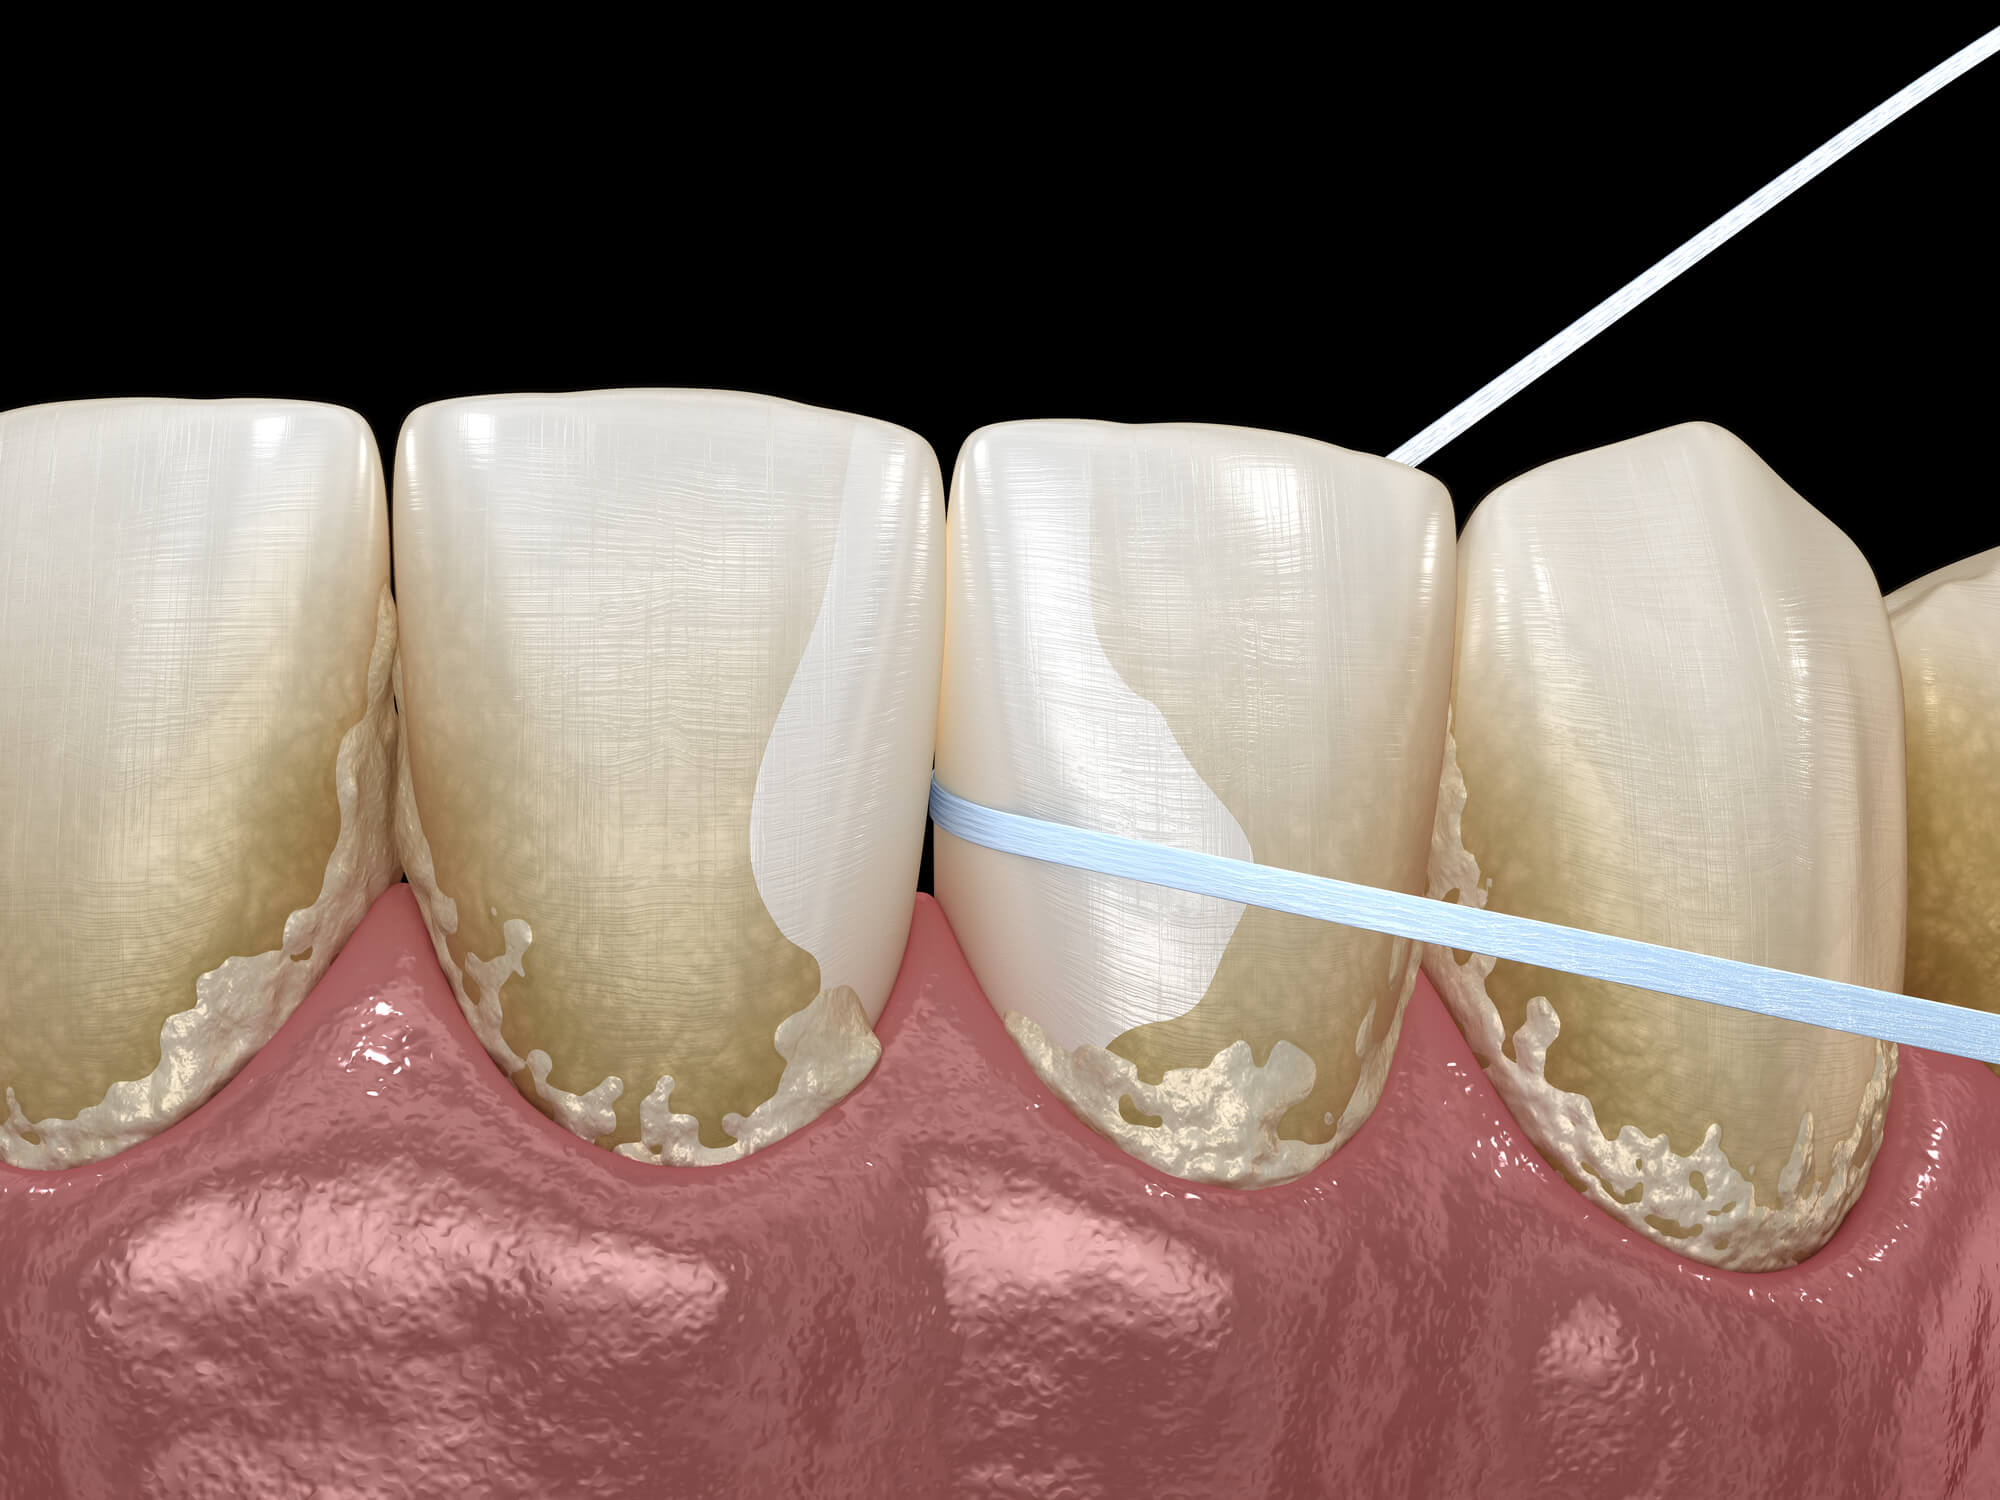 The Different Stages of Gum Disease